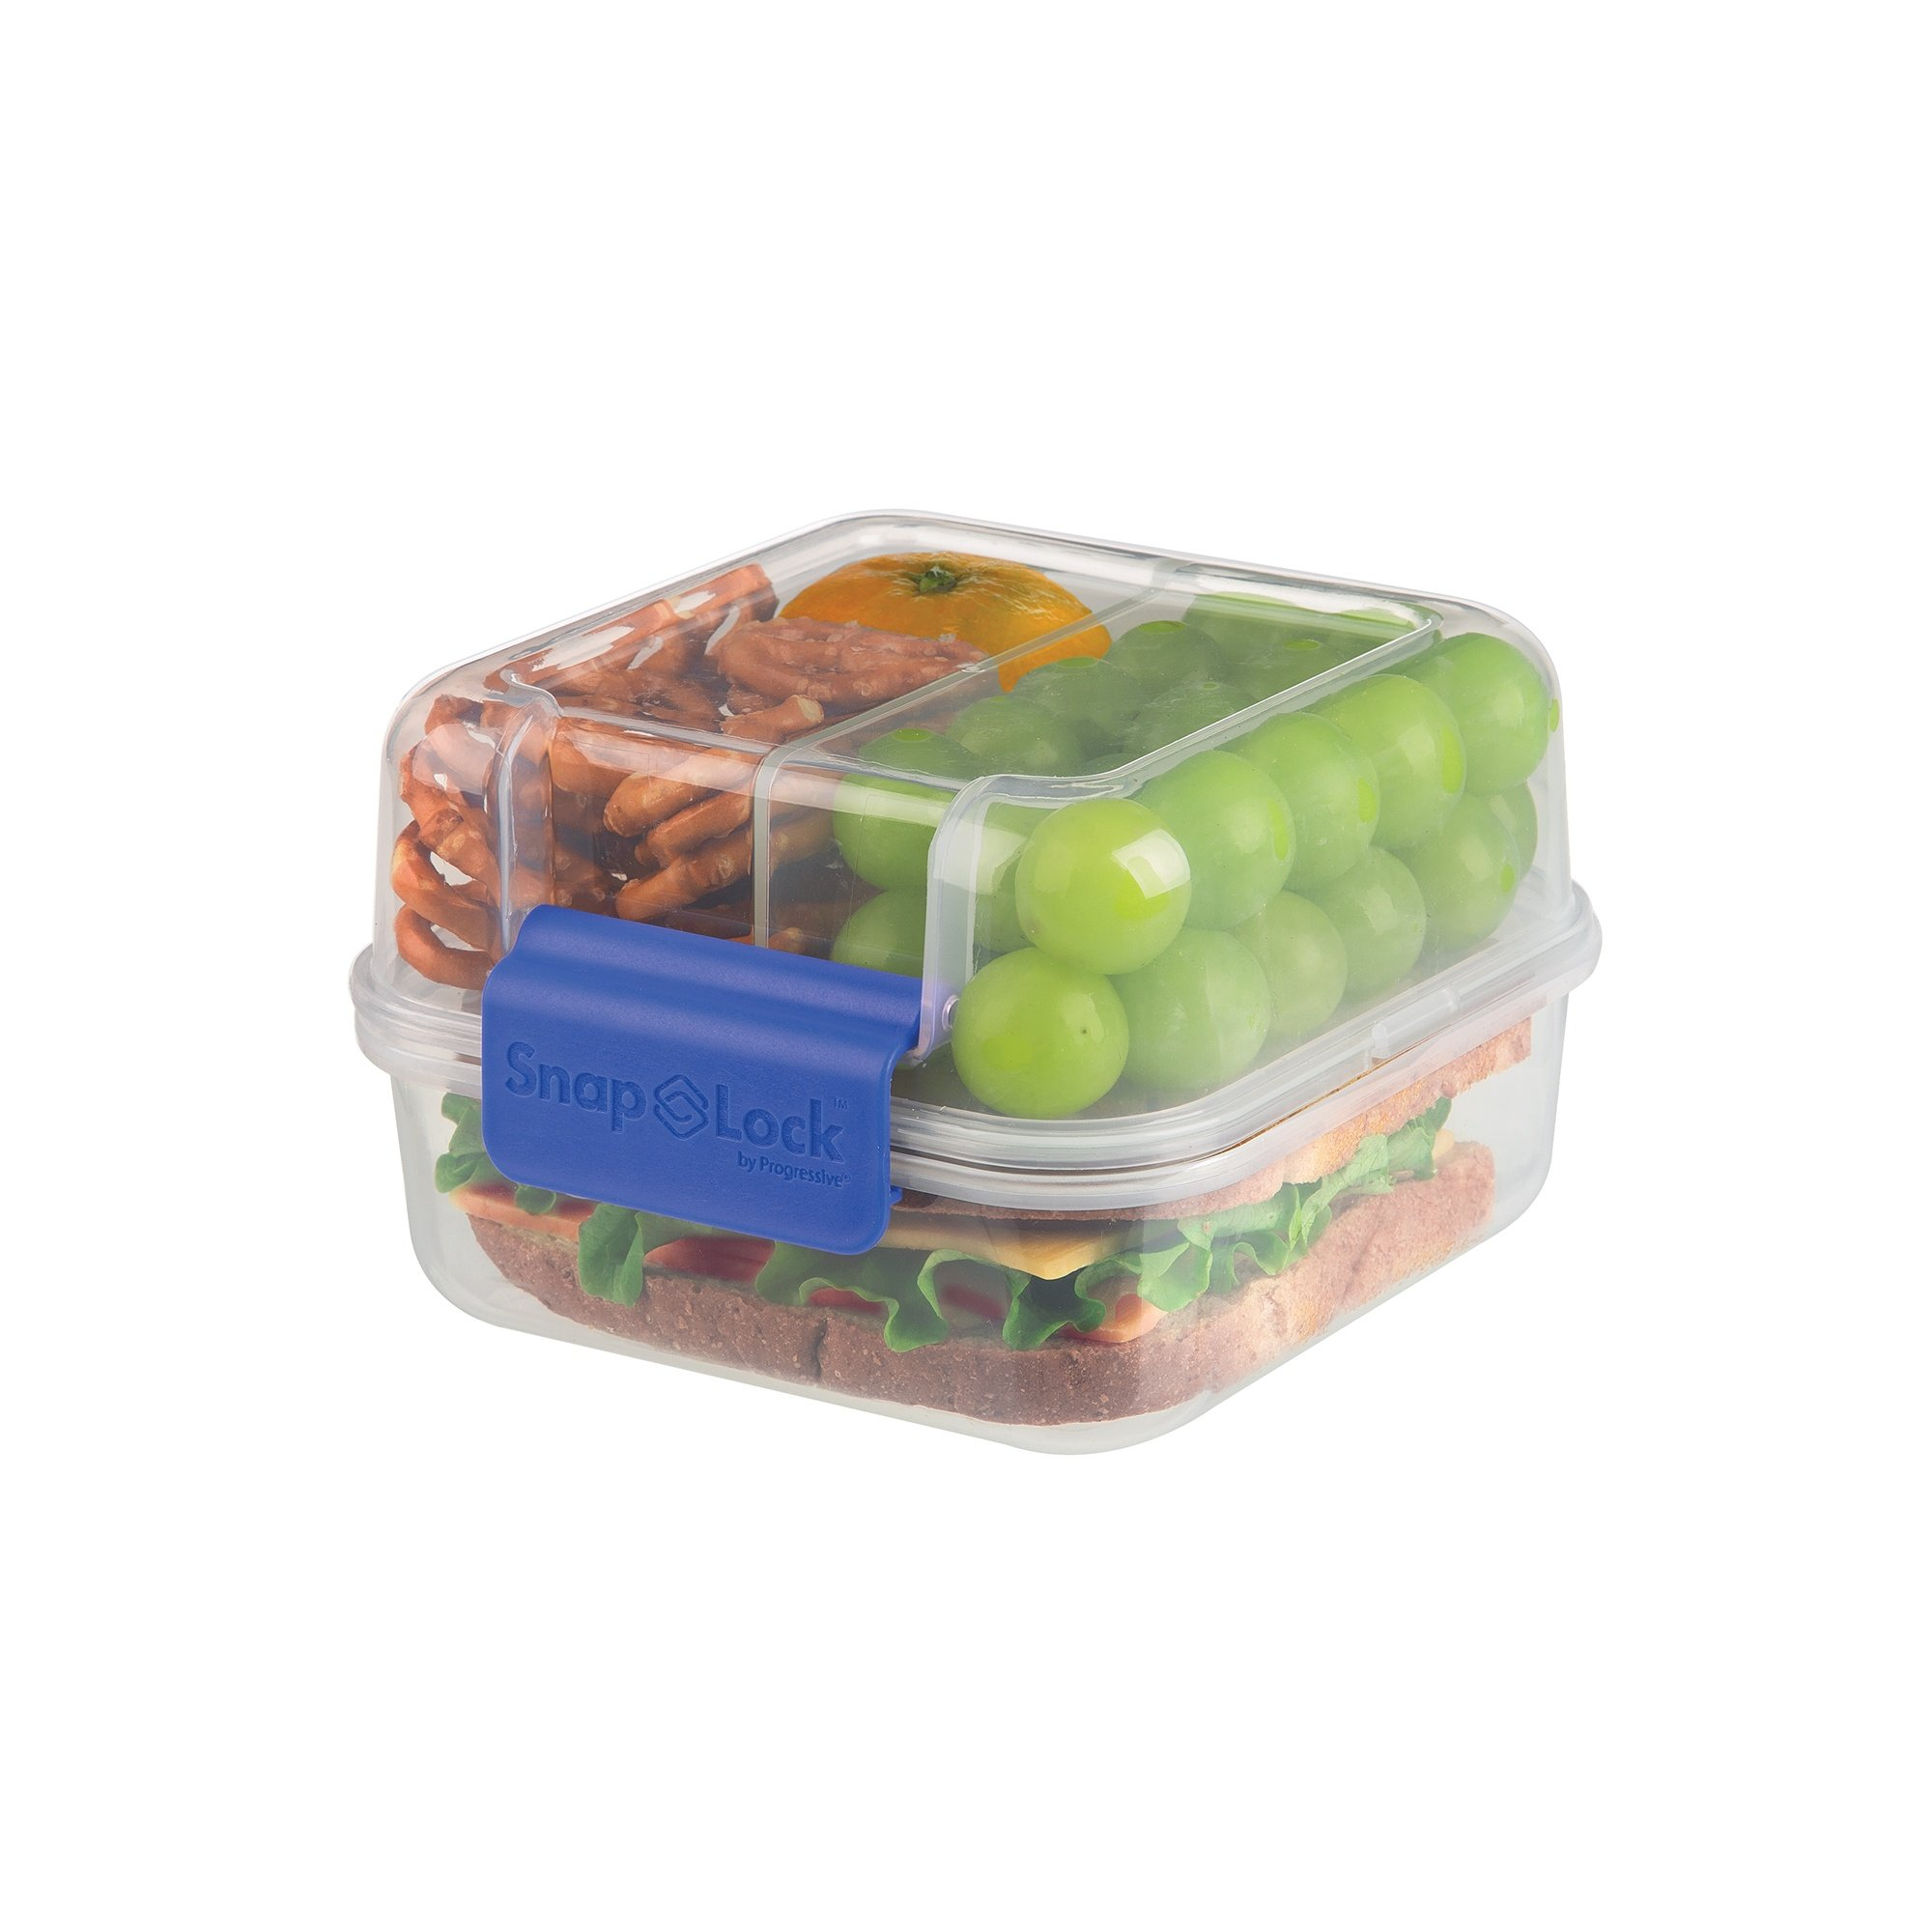 SnapLock by Progressive Lunch Cube To-Go Container - Blue, SNL-1005B Easy-To-Open, Leak-Proof Silicone Seal, Snap-Off Lid, Stackable, BPA FREE by Progressive International